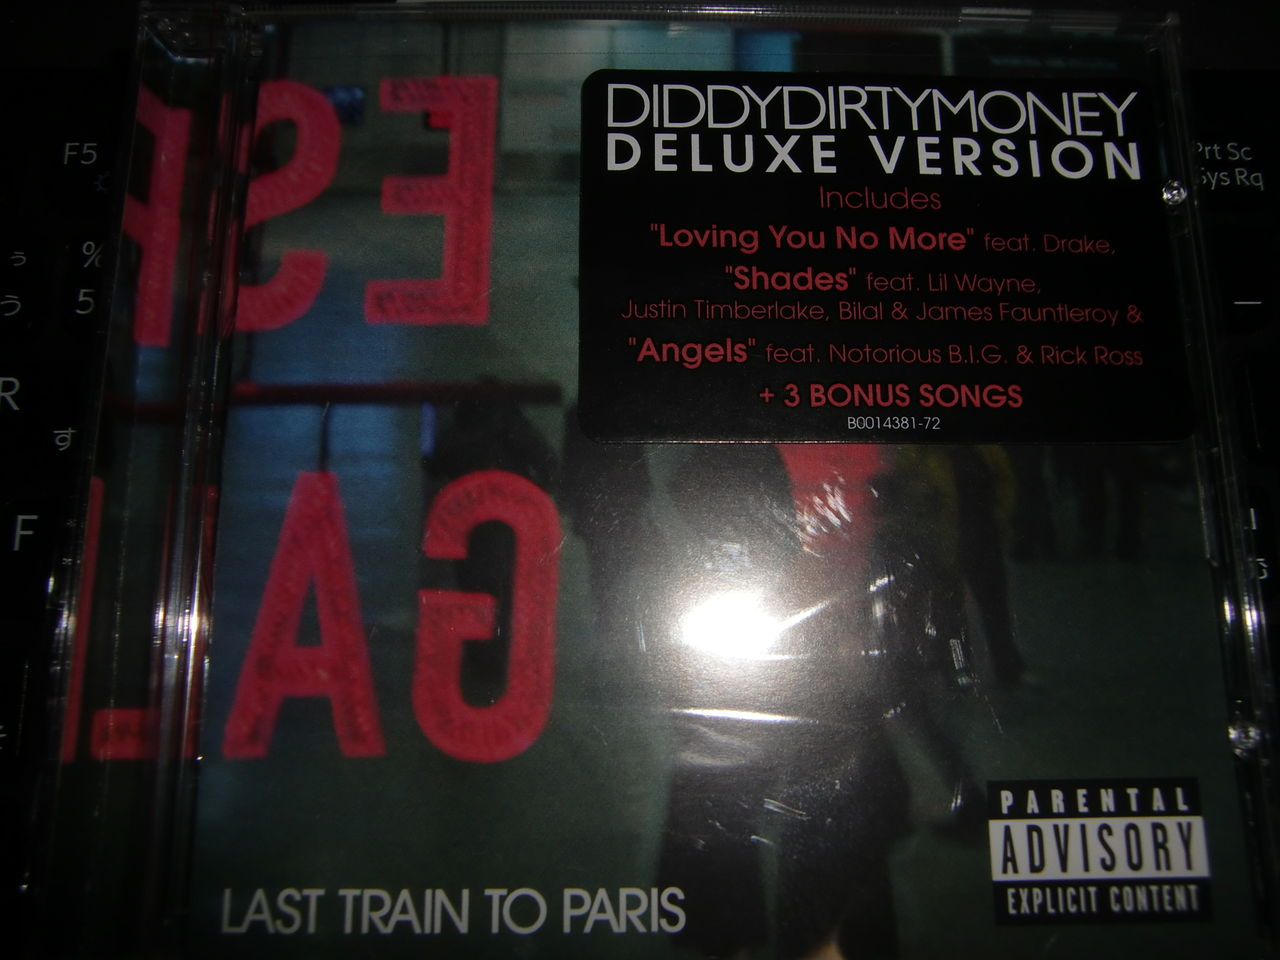 diddy dirty money last train to paris deluxe edition album